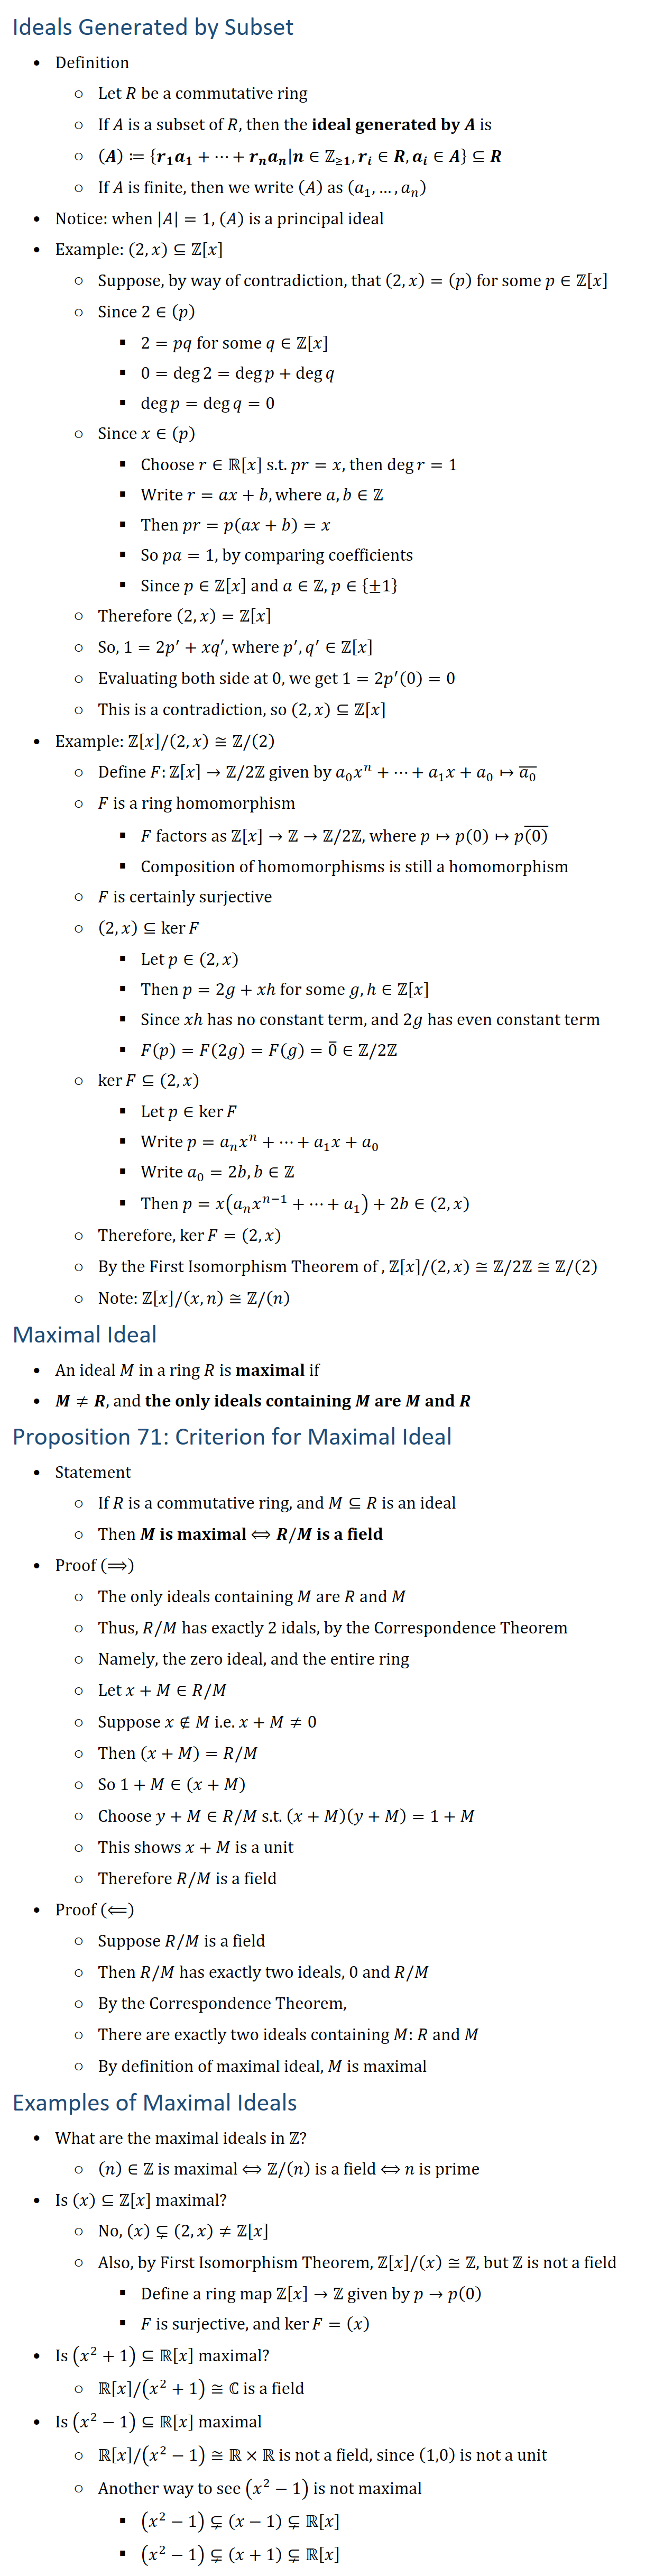 Ideals Generated by Subset • Definition ○ Let R be a commutative ring ○ If A is a subset of R, then the ideal generated by A is ○ (A)≔{r_1 a_1+…+r_n a_n│n∈Z(≥1),r_i∈R,a_i∈A}⊆R ○ If A is finite, then we write (A) as (a_1,…,a_n ) • Notice: when |A|=1, (A) is a principal ideal • Example: (2,x)⊆Z[x] ○ Suppose, by way of contradiction, that (2,x)=(p) for some p∈Z[x] ○ Since 2∈(p) § 2=pq for some q∈Z[x] § 0=deg2=degp+degq § degp=degq=0 ○ Since x∈(p) § Choose r∈R[x] s.t. pr=x, then deg〖r=1〗 § Write r=ax+b,where a,b∈Z § Then pr=p(ax+b)=x § So pa=1, by comparing coefficients § Since p∈Z[x] and a∈Z, p∈{±1} ○ Therefore (2,x)=Z[x] ○ So, 1=2p^′+xq′, where p^′,q^′∈Z[x] ○ Evaluating both side at 0, we get 1=2p^′ (0)=0 ○ This is a contradiction, so (2,x)⊆Z[x] • Example: Z[x]\/(2,x)≅Z\/(2) ○ Define F:Z[x]→Z\/2Z given by a_0 x^n+…+a_1 x+a_0↦(a_0 ) ̅ ○ F is a ring homomorphism § F factors as Z[x]→Z→Z\/2Z, where p↦p(0)↦p((0) ) ̅ § Composition of homomorphisms is still a homomorphism ○ F is certainly surjective ○ (2,x)⊆kerF § Let p∈(2,x) § Then p=2g+xh for some g,h∈Z[x] § Since xh has no constant term, and 2g has even constant term § F(p)=F(2g)=F(g)=0 ̅∈Z\/2Z ○ kerF⊆(2,x) § Let p∈kerF § Write p=a_n x^n+…+a_1 x+a_0 § Write a_0=2b,b∈Z § Then p=x(a_n x^(n−1)+…+a_1 )+2b∈(2,x) ○ Therefore, kerF=(2,x) ○ By the First Isomorphism Theorem of , Z[x]\/(2,x)≅Z\/2Z≅Z\/(2) ○ Note: Z[x]\/(x,n)≅Z\/(n) Maximal Ideal • An ideal M in a ring R is maximal if • M≠R, and the only ideals containing M are M and R Proposition 71: Criterion for Maximal Ideal • Statement ○ If R is a commutative ring, and M⊆R is an ideal ○ Then M is maximal ⟺R\/M is a field • Proof (⟹) ○ The only ideals containing M are R and M ○ Thus, R\/M has exactly 2 idals, by the Correspondence Theorem ○ Namely, the zero ideal, and the entire ring ○ Let x+M∈R\/M ○ Suppose x∉M i.e. x+M≠0 ○ Then (x+M)=R\/M ○ So 1+M∈(x+M) ○ Choose y+M∈R\/M s.t. (x+M)(y+M)=1+M ○ This shows x+M is a unit ○ Therefore R\/M is a field • Proof (⟸) ○ Suppose R\/M is a f